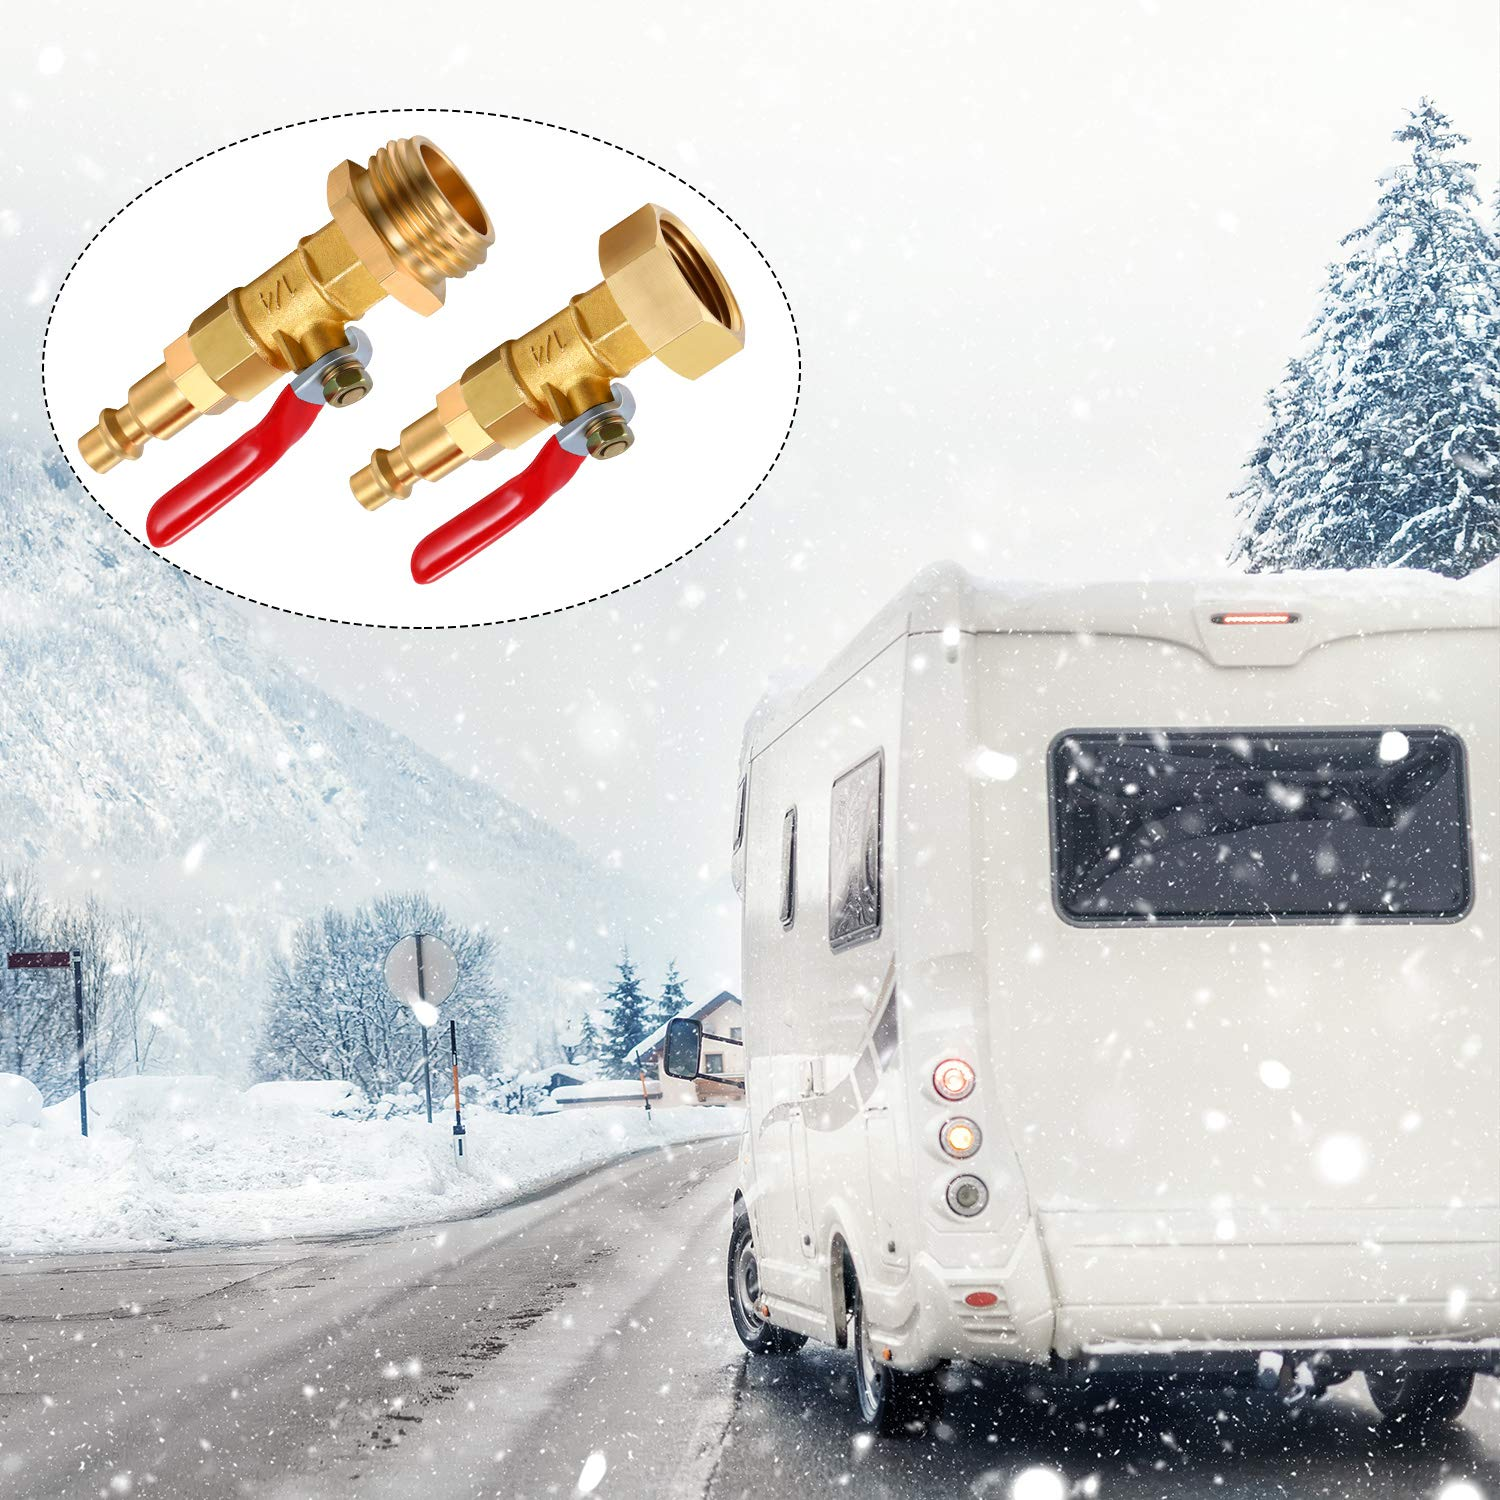 Winterize Blowout Adapter with 1//4 Inch Male Quick Plug and 3//4 Inch Female Garden Hose Threading Brass Quick Adapter with Ball Valve for Blowing Out Water to Winterize Garden Hose Sprinkler System